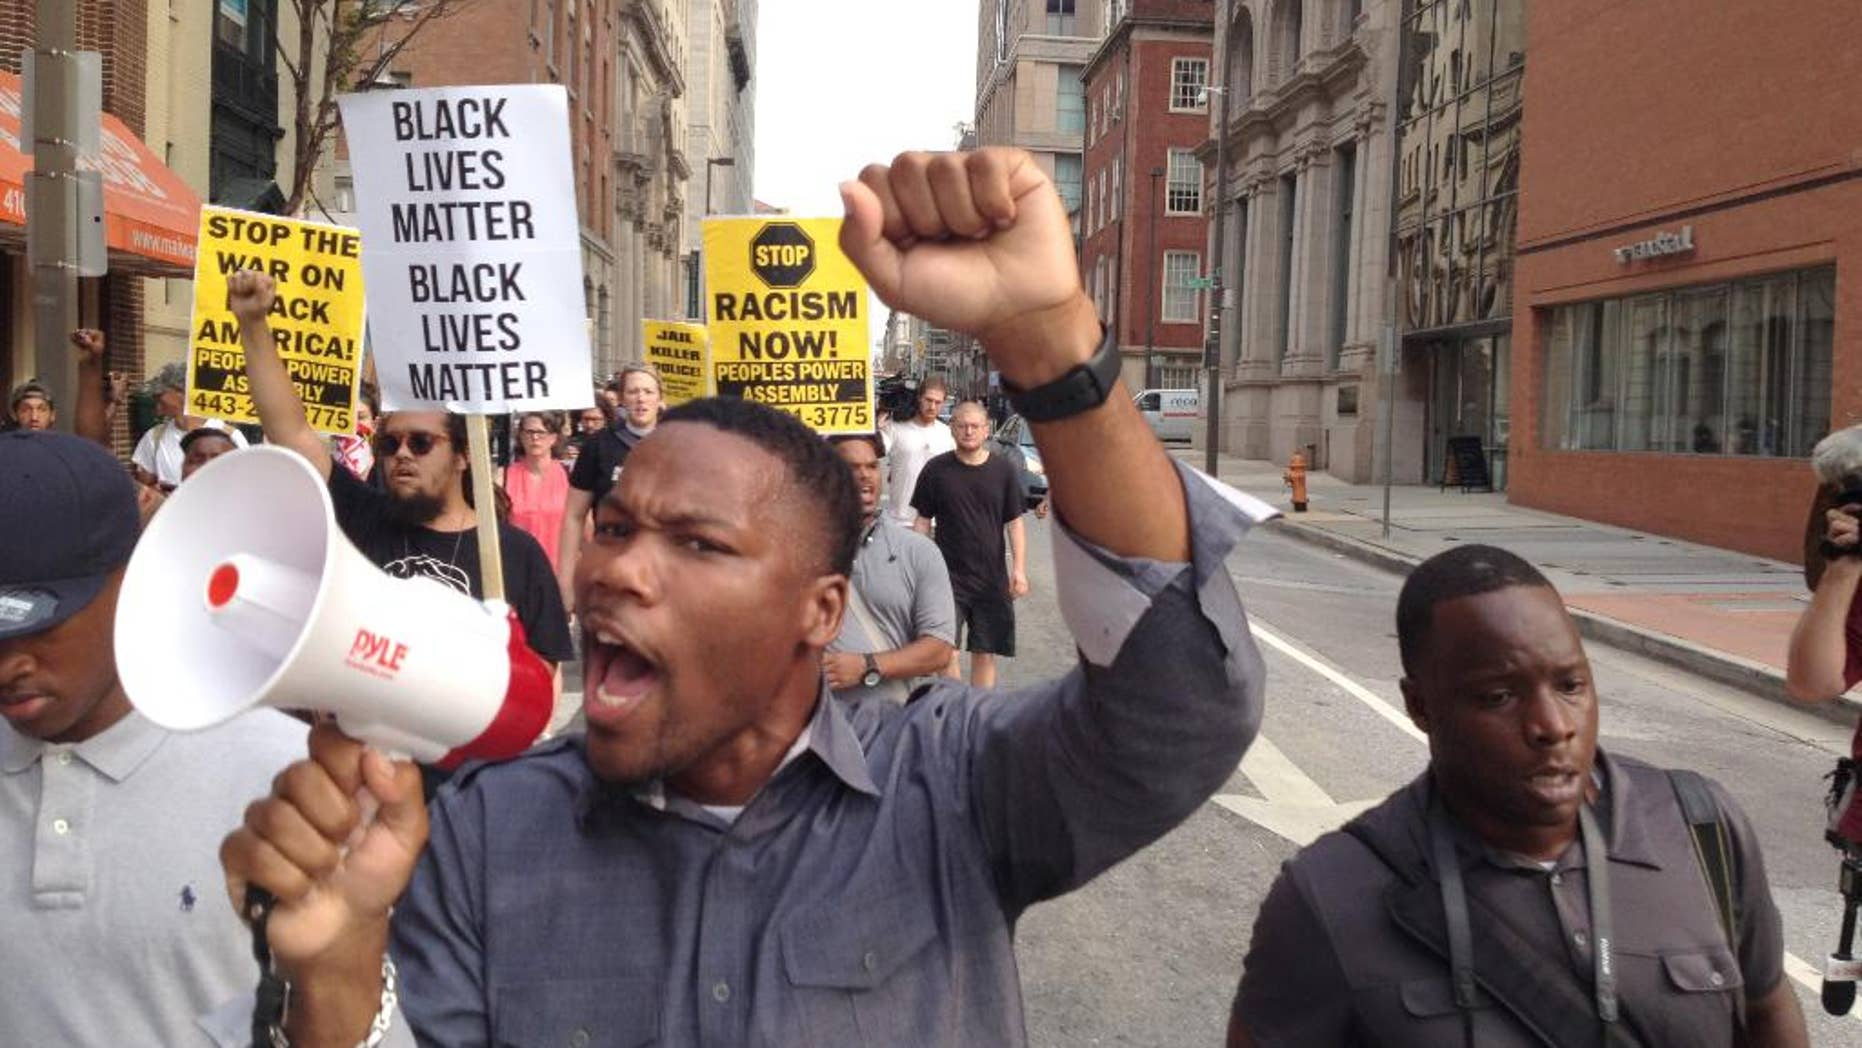 FILE - In a Wednesday, Sept. 2, 2015 file photo, Pastor Westley West, from Faith Empowered Ministries, leads protesters as they march towards Pratt Street and the Inner Harbor, in Baltimore, as the first court hearing was set to begin for six police officers criminally charged in the death of Freddie Gray. West was arrested Wednesday, Sept. 9, a week after police say he blocked traffic while protesting during pre-trial hearings in the Freddie Gray case. He is charged with attempting to incite a riot, malicious destruction of property, disorderly conduct, disturbance of the peace, false imprisonment and failure to obey.  (Lloyd Fox/The Baltimore Sun via AP, File)  WASHINGTON EXAMINER OUT; MANDATORY CREDIT